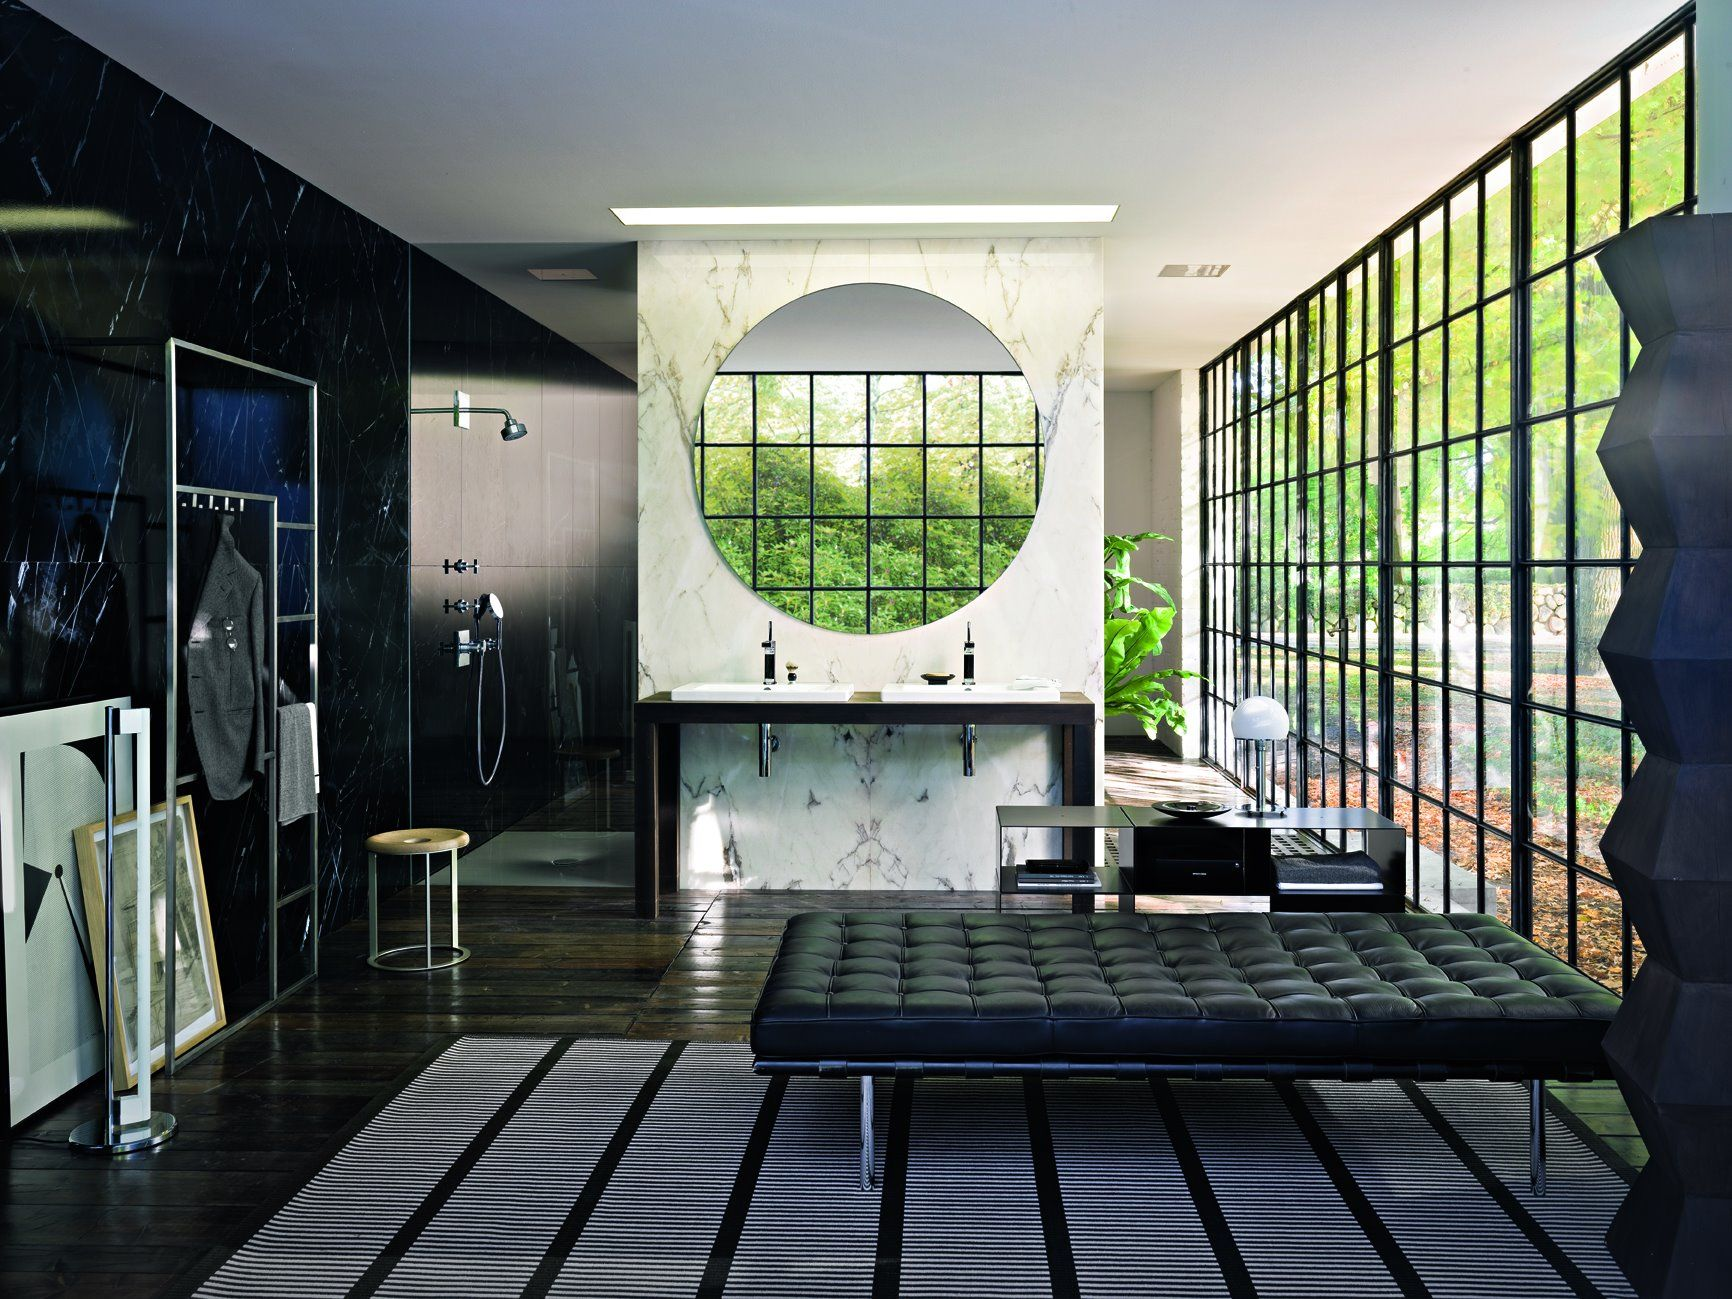 Axor Citterio - The designer Antonio Citterio combines home décor and bathrooms, making them a place to relax. Read more: http://www.hansgrohe-int.com/809.htm